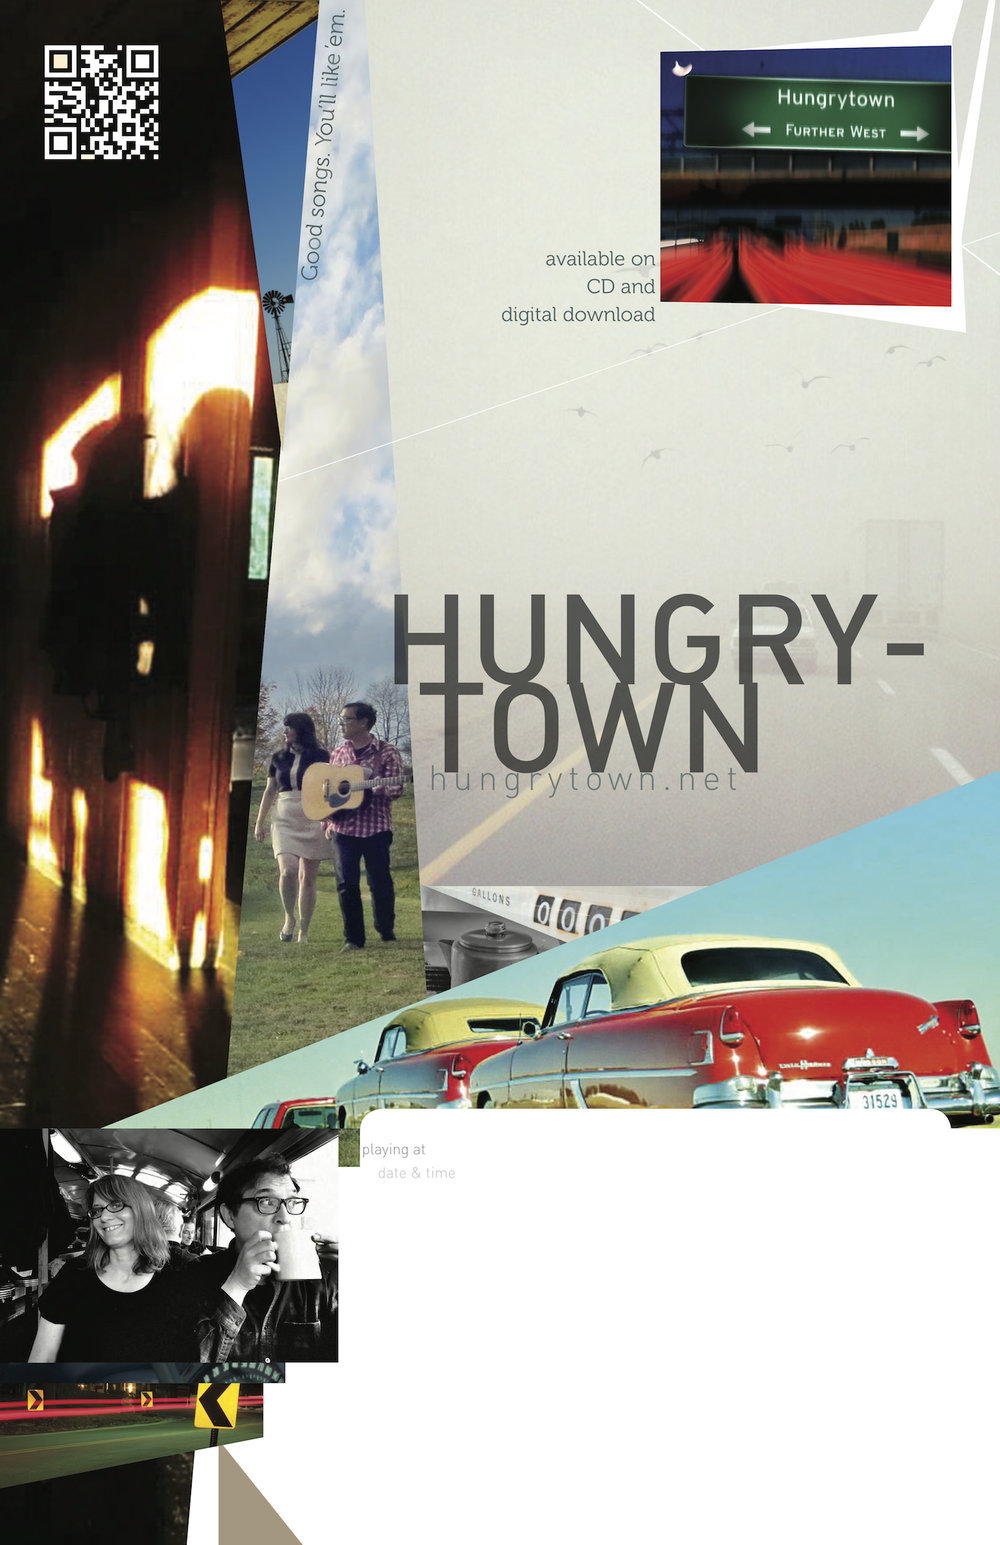 Hungrytown-Poster-01-v2-FurtherWest-Letter-download copy 2.jpg